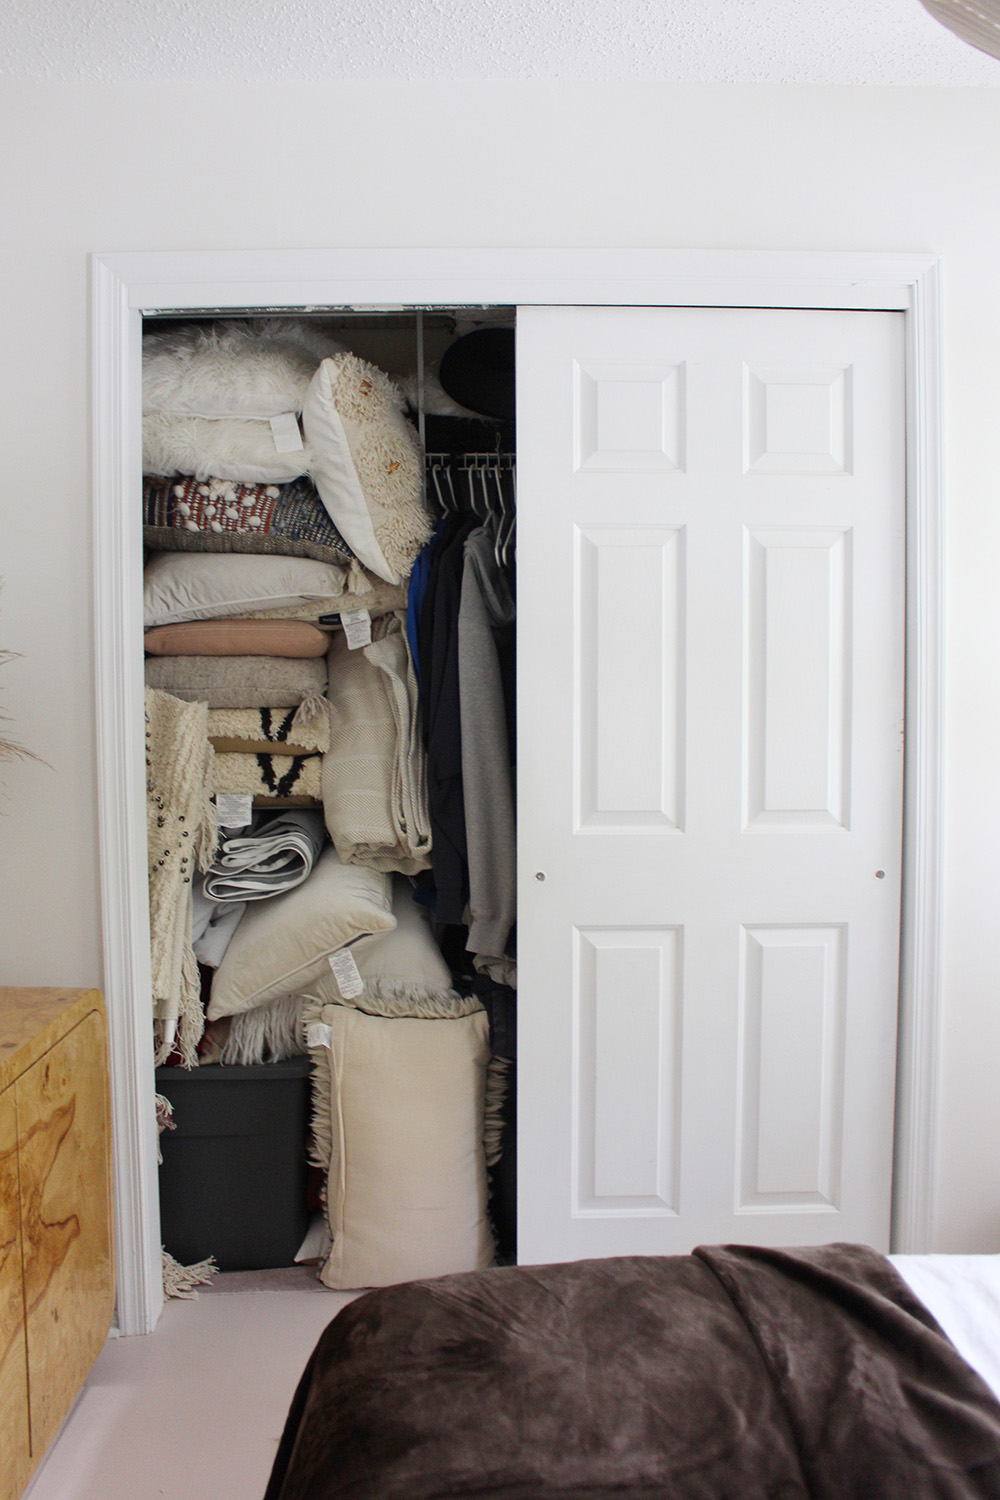 A closet with the other door slid open filled with pillows and linens.